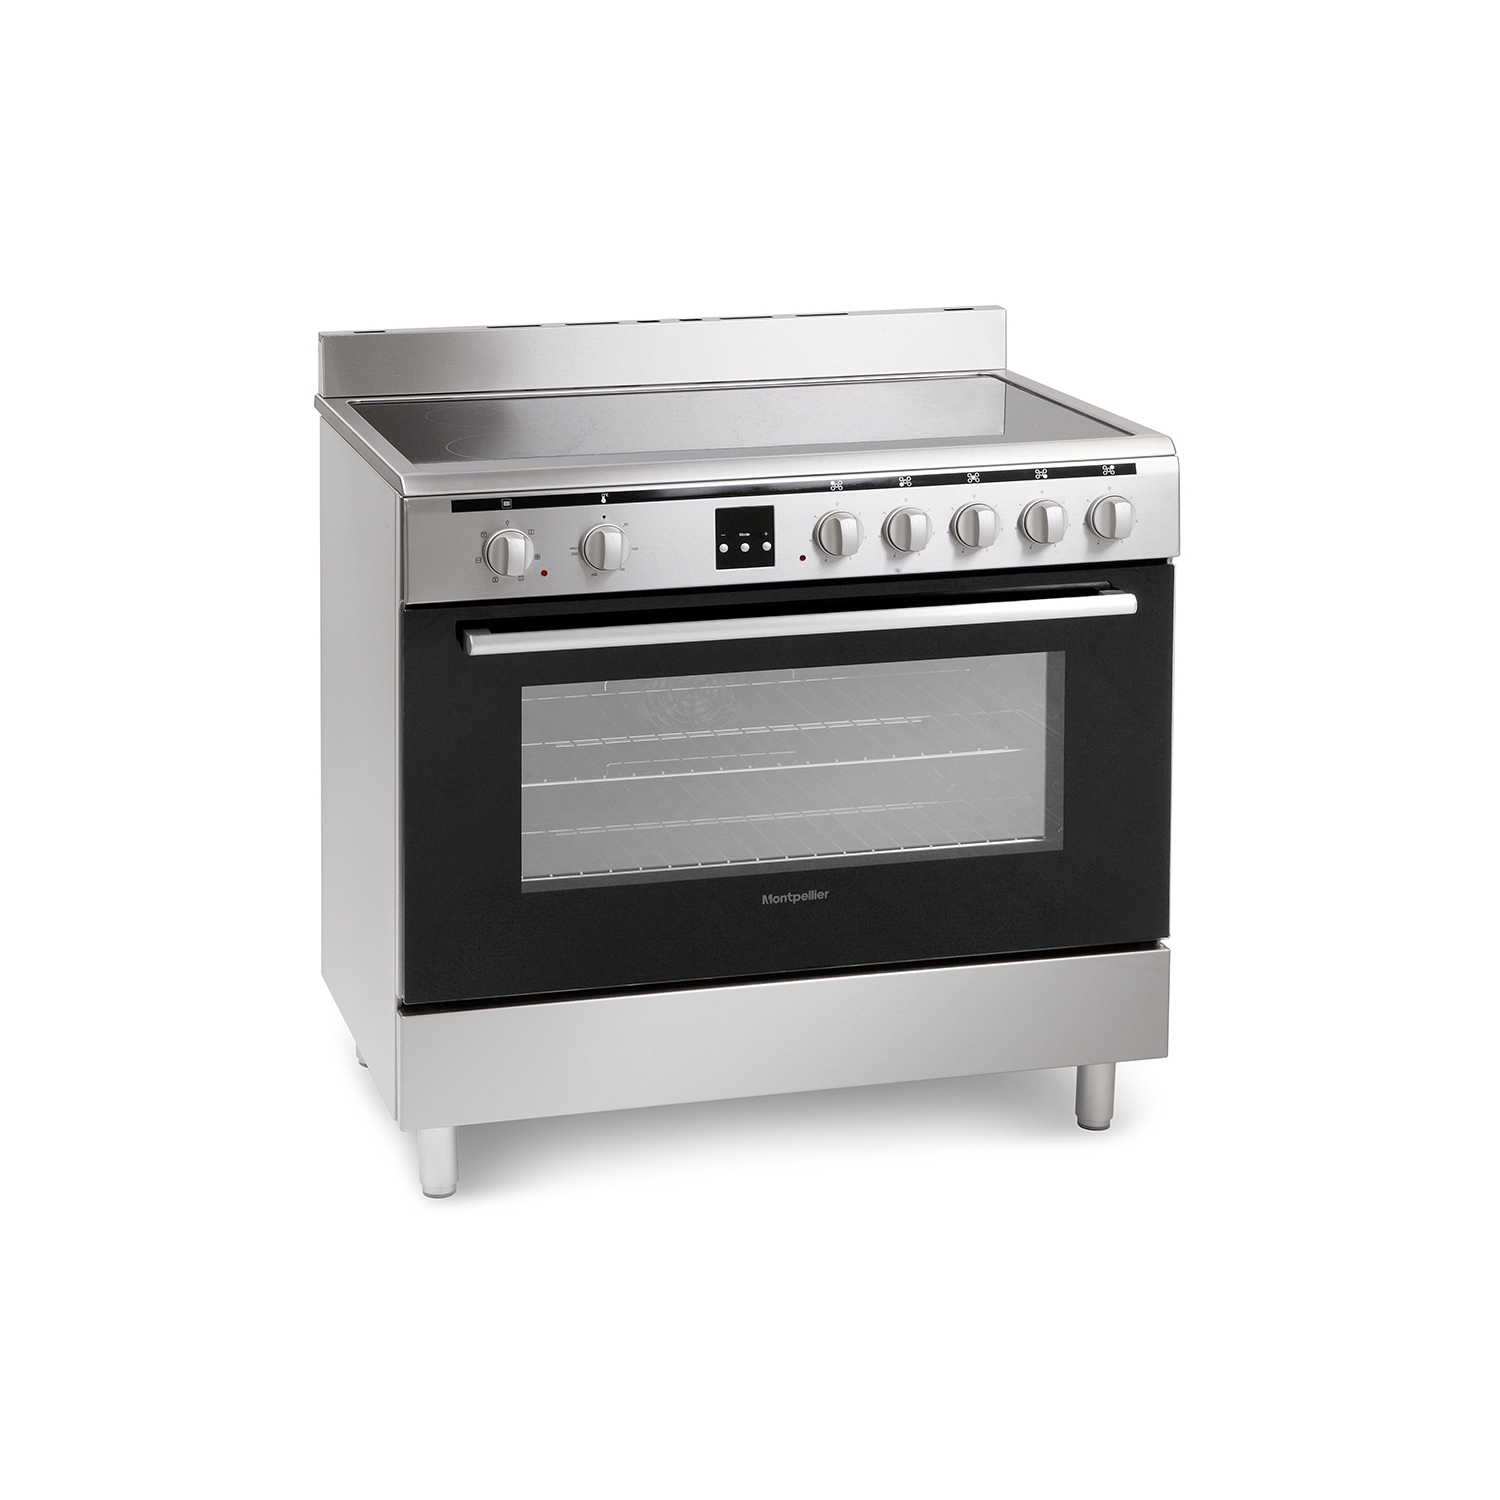 Montpellier MR90CEMX Electric Range Cooker - 0